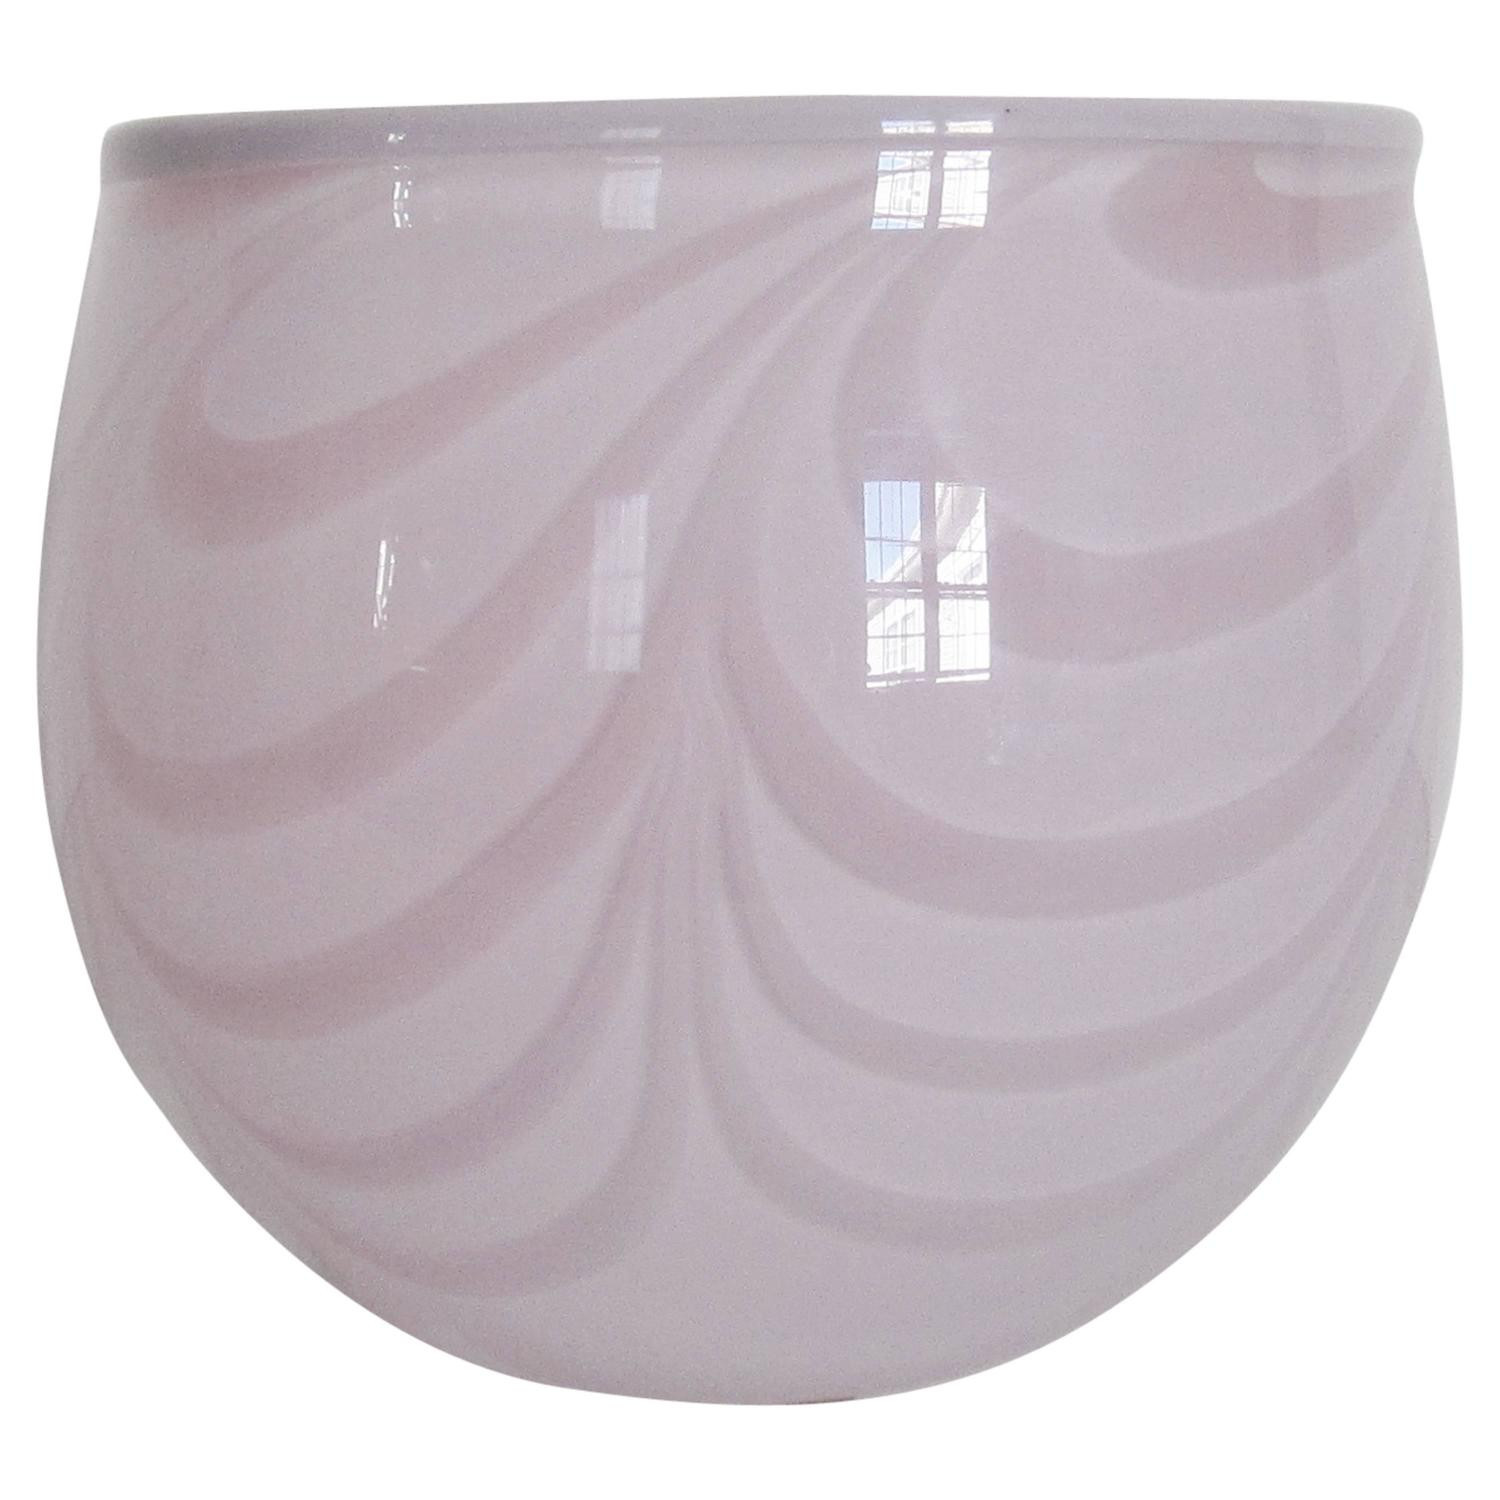 tiffany art glass vase of swedish glass vase by designer kjell engman for sale at 1stdibs within 3415182 z